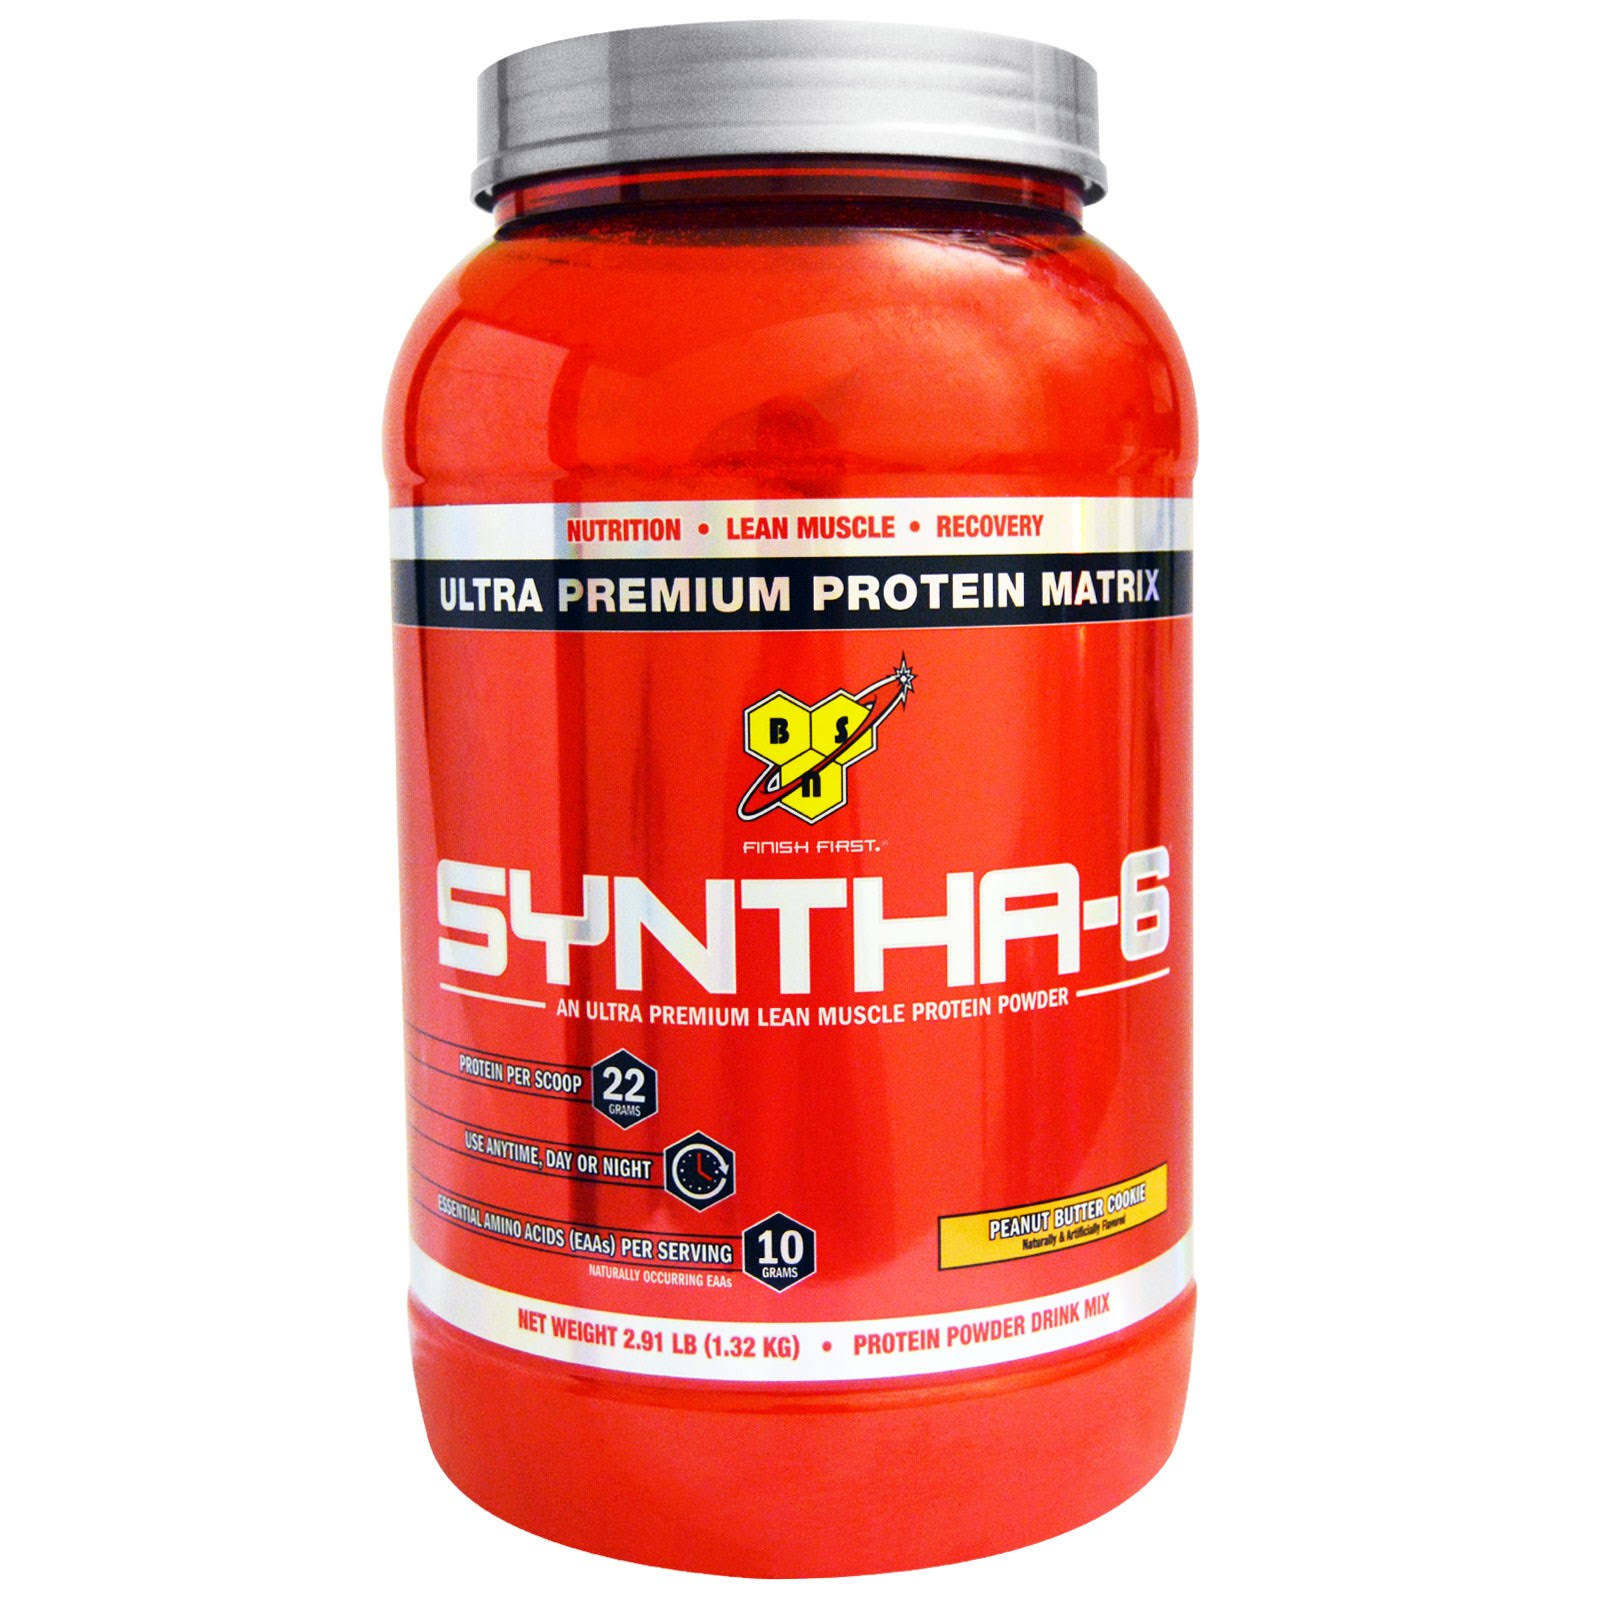 BSN Syntha-6 Protein Powder - Peanut Butter Cookie, 2.91lbs, 28 Servings